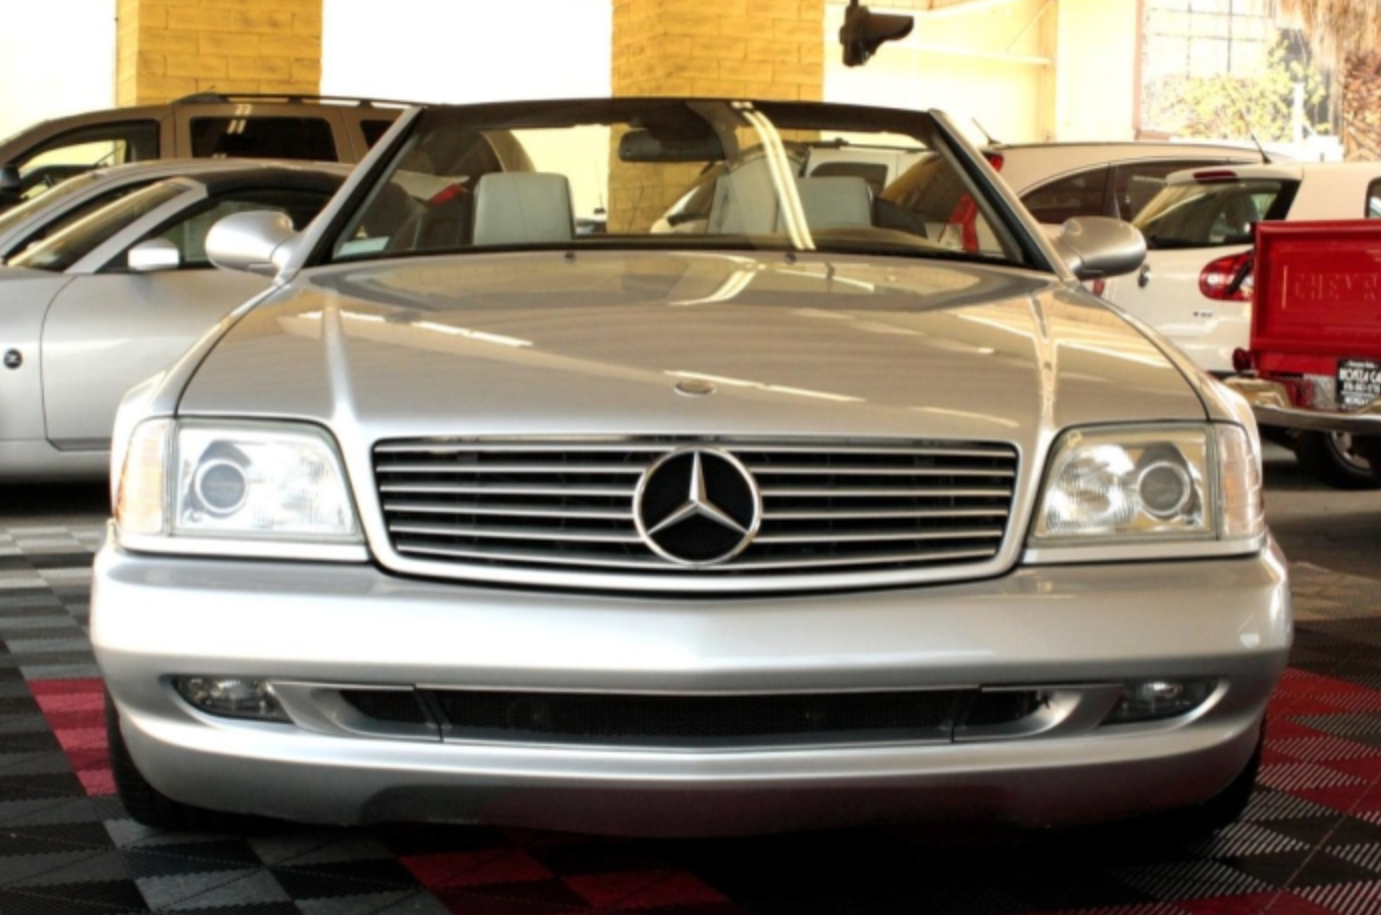 2002 Mercedes Benz Sl500 Silver Arrow German Cars For